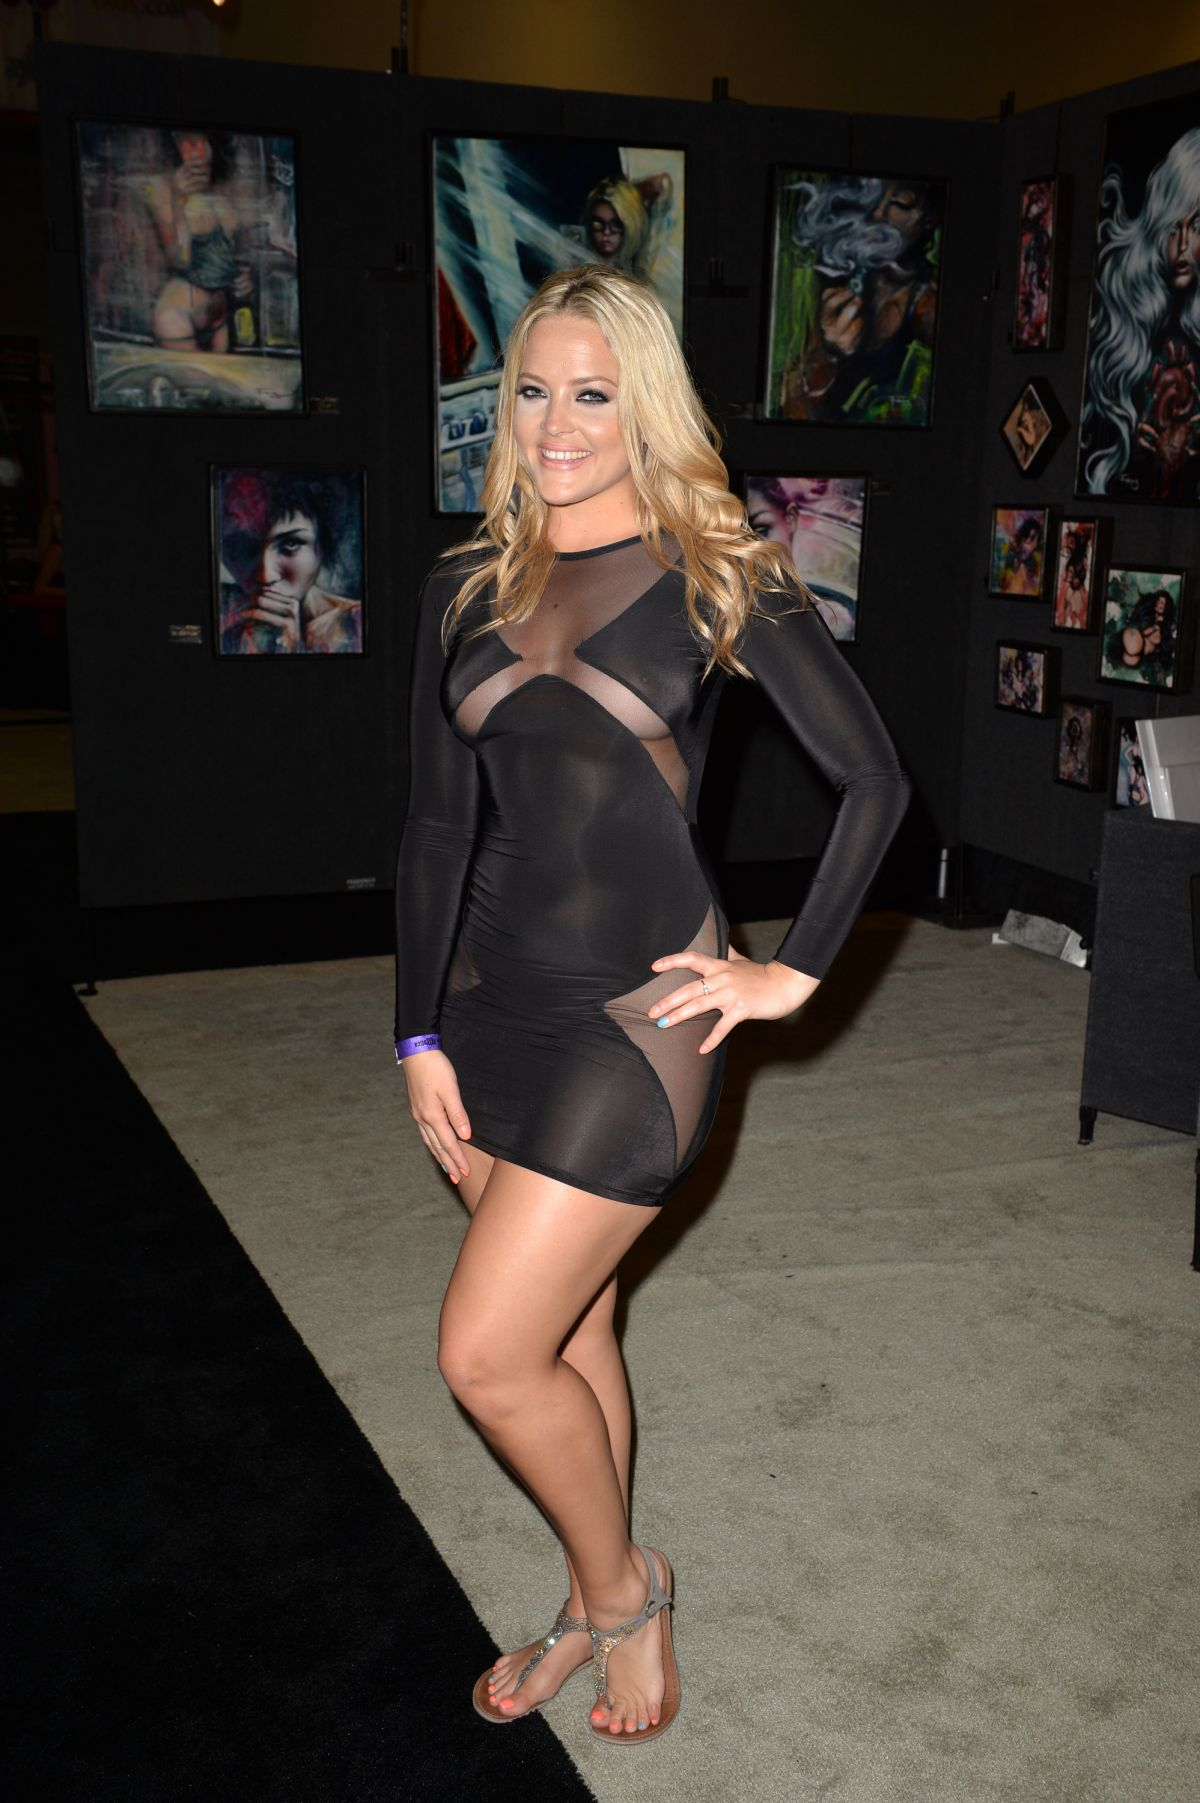 ALEXIS TEXAS at Exxxotica Expo 2014 in Florida